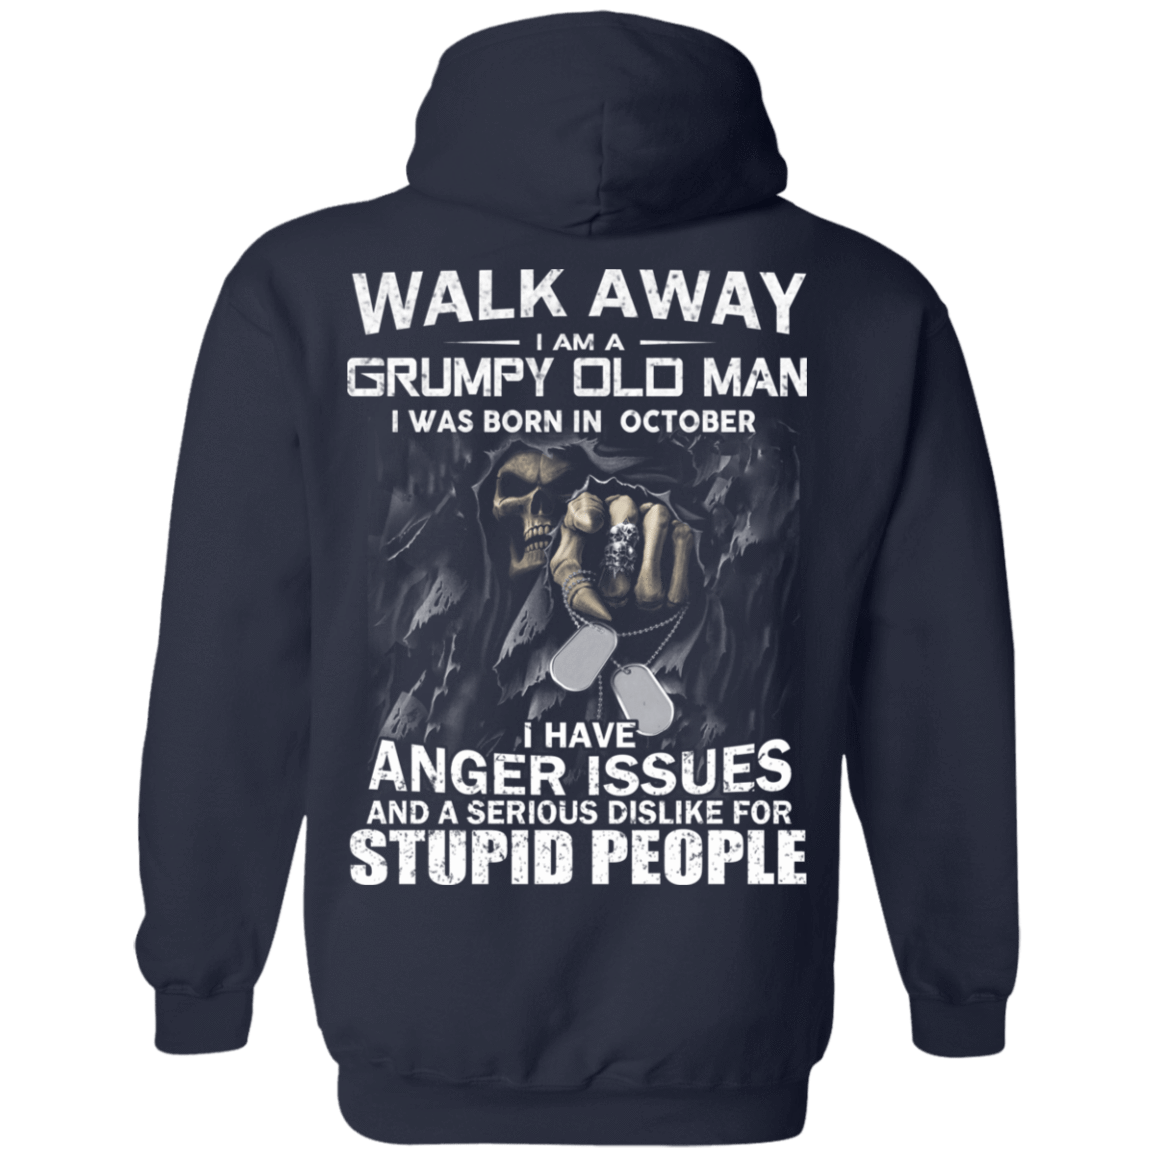 I Am A Grumpy Old Man I Was Born In October T-Shirts, Hoodies, Tank 541-4742-80564225-23135 - Tee Ript